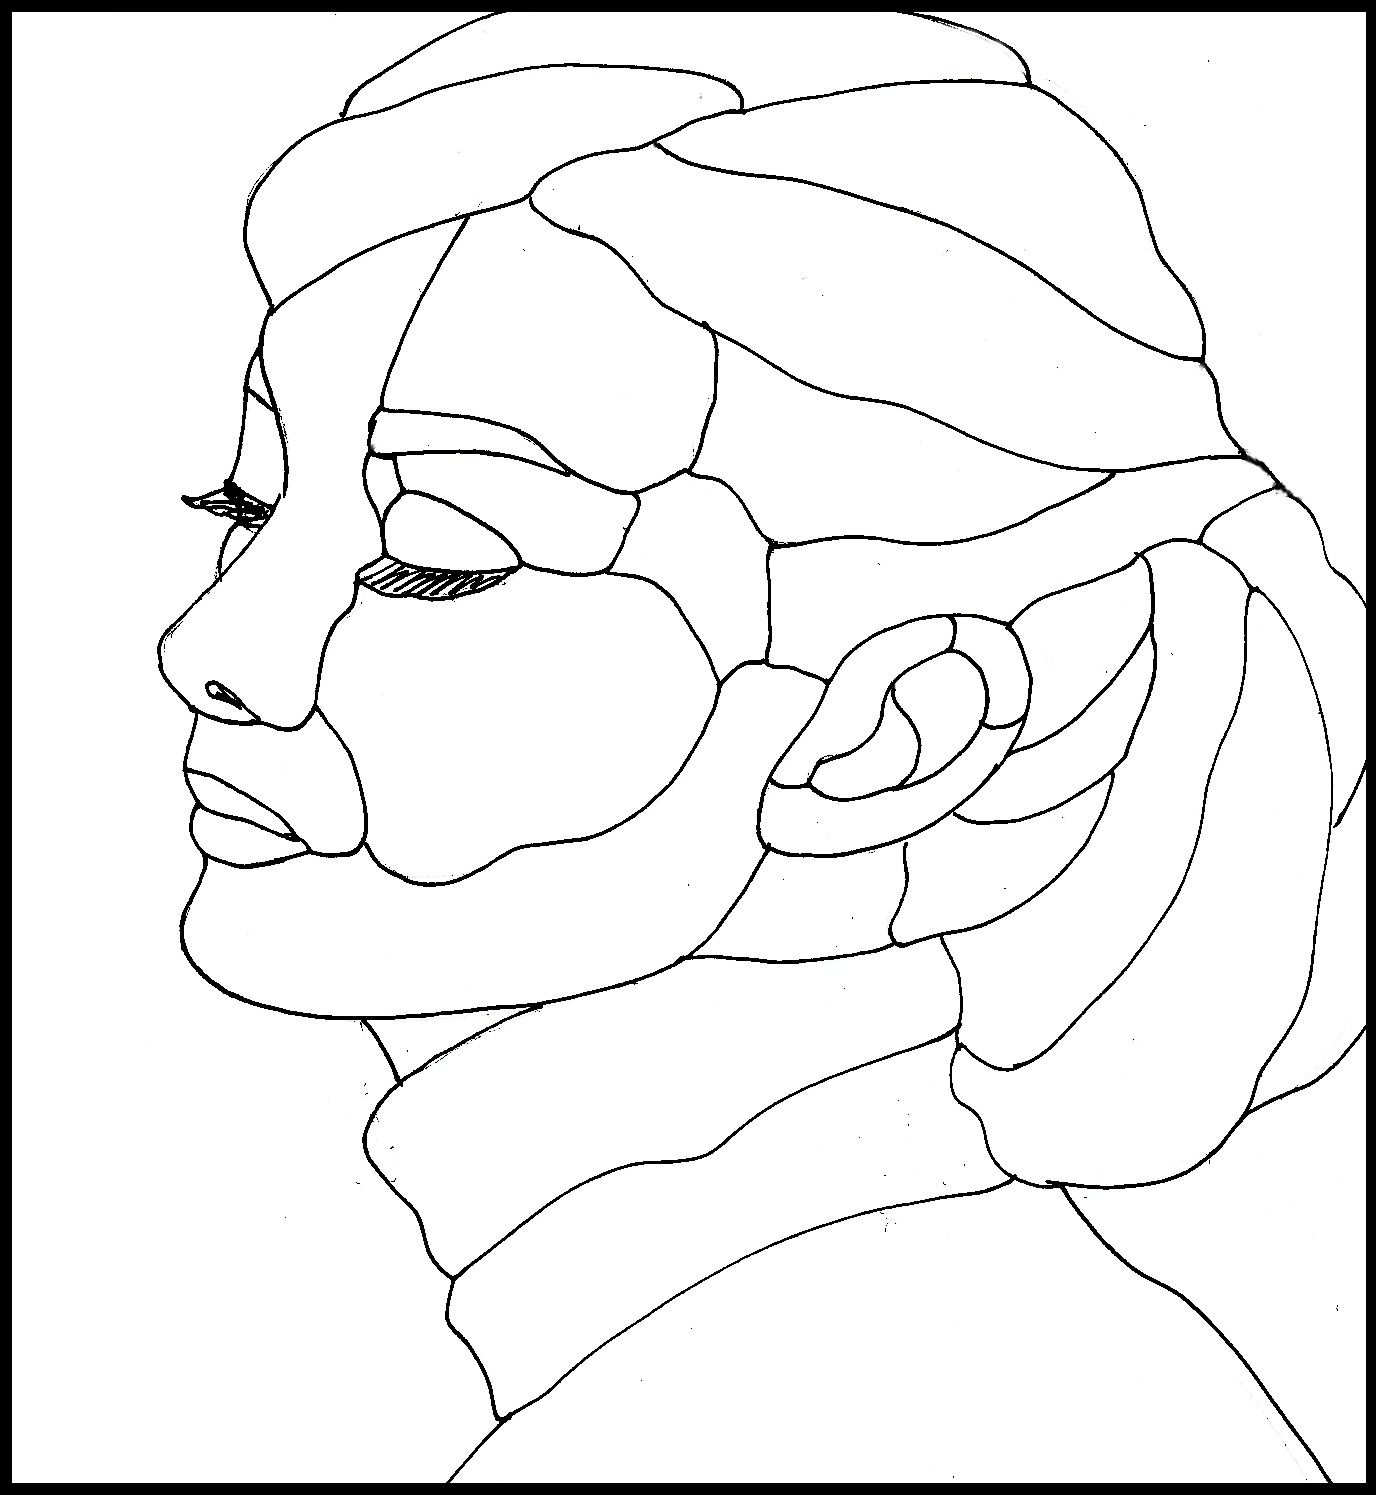 Stained glass patterns audrey hepburn drawing pages